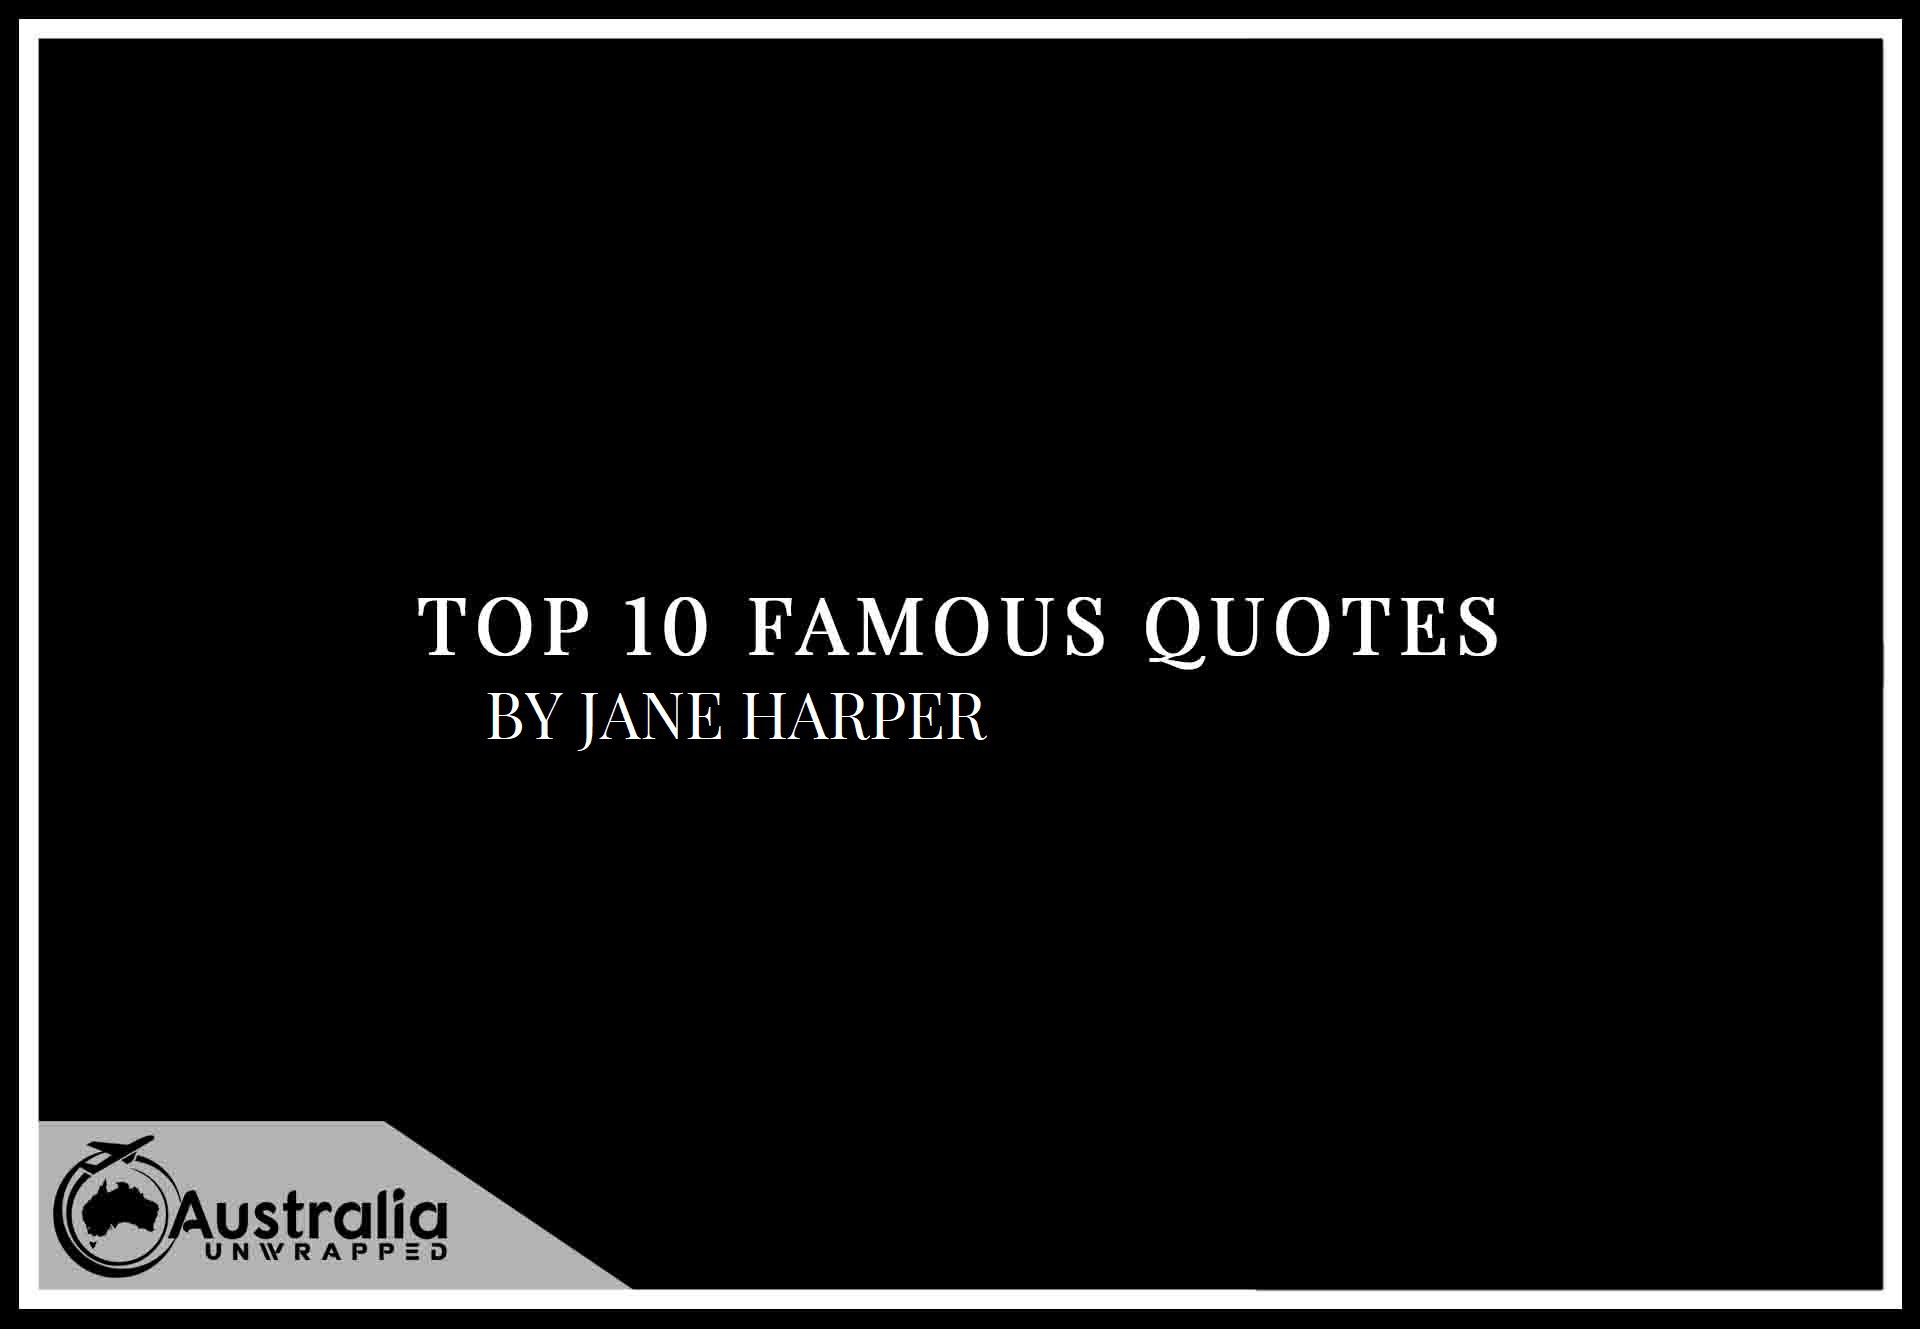 Top 10 Famous Quotes by Author Jane Harper